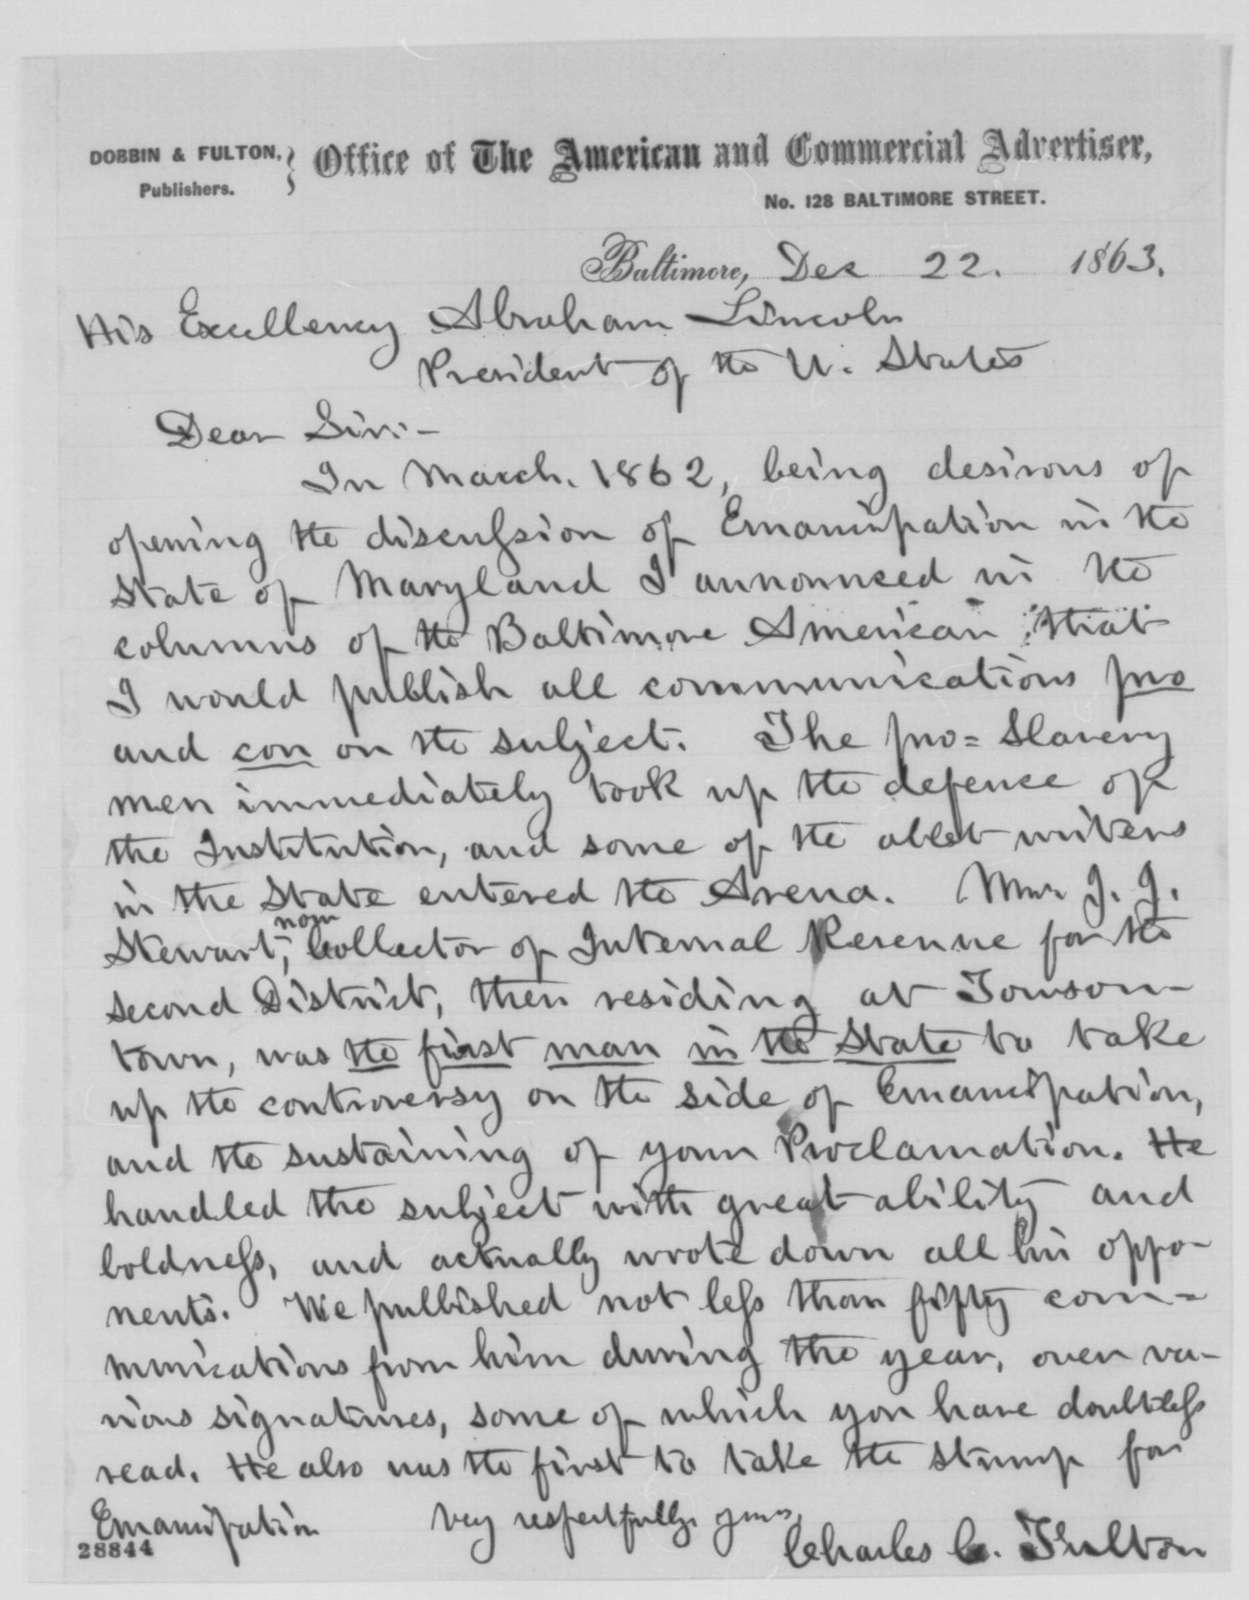 Charles C. Fulton to Abraham Lincoln, Tuesday, December 22, 1863  (J. J. Stewart's position on emancipation)